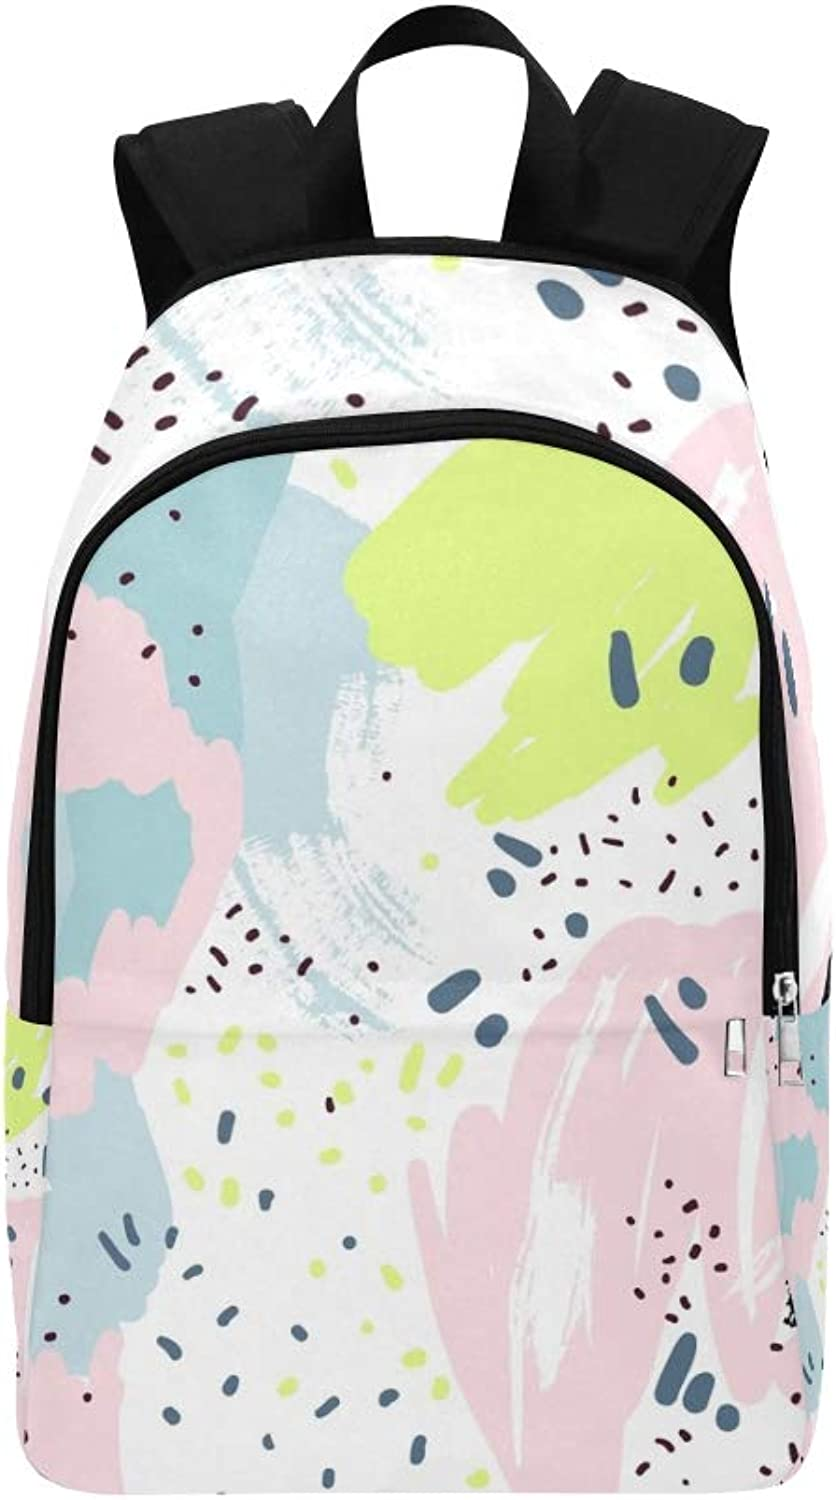 Brush Marker Pencil Stroke Abstract Casual Daypack Travel Bag College School Backpack for Mens and Women